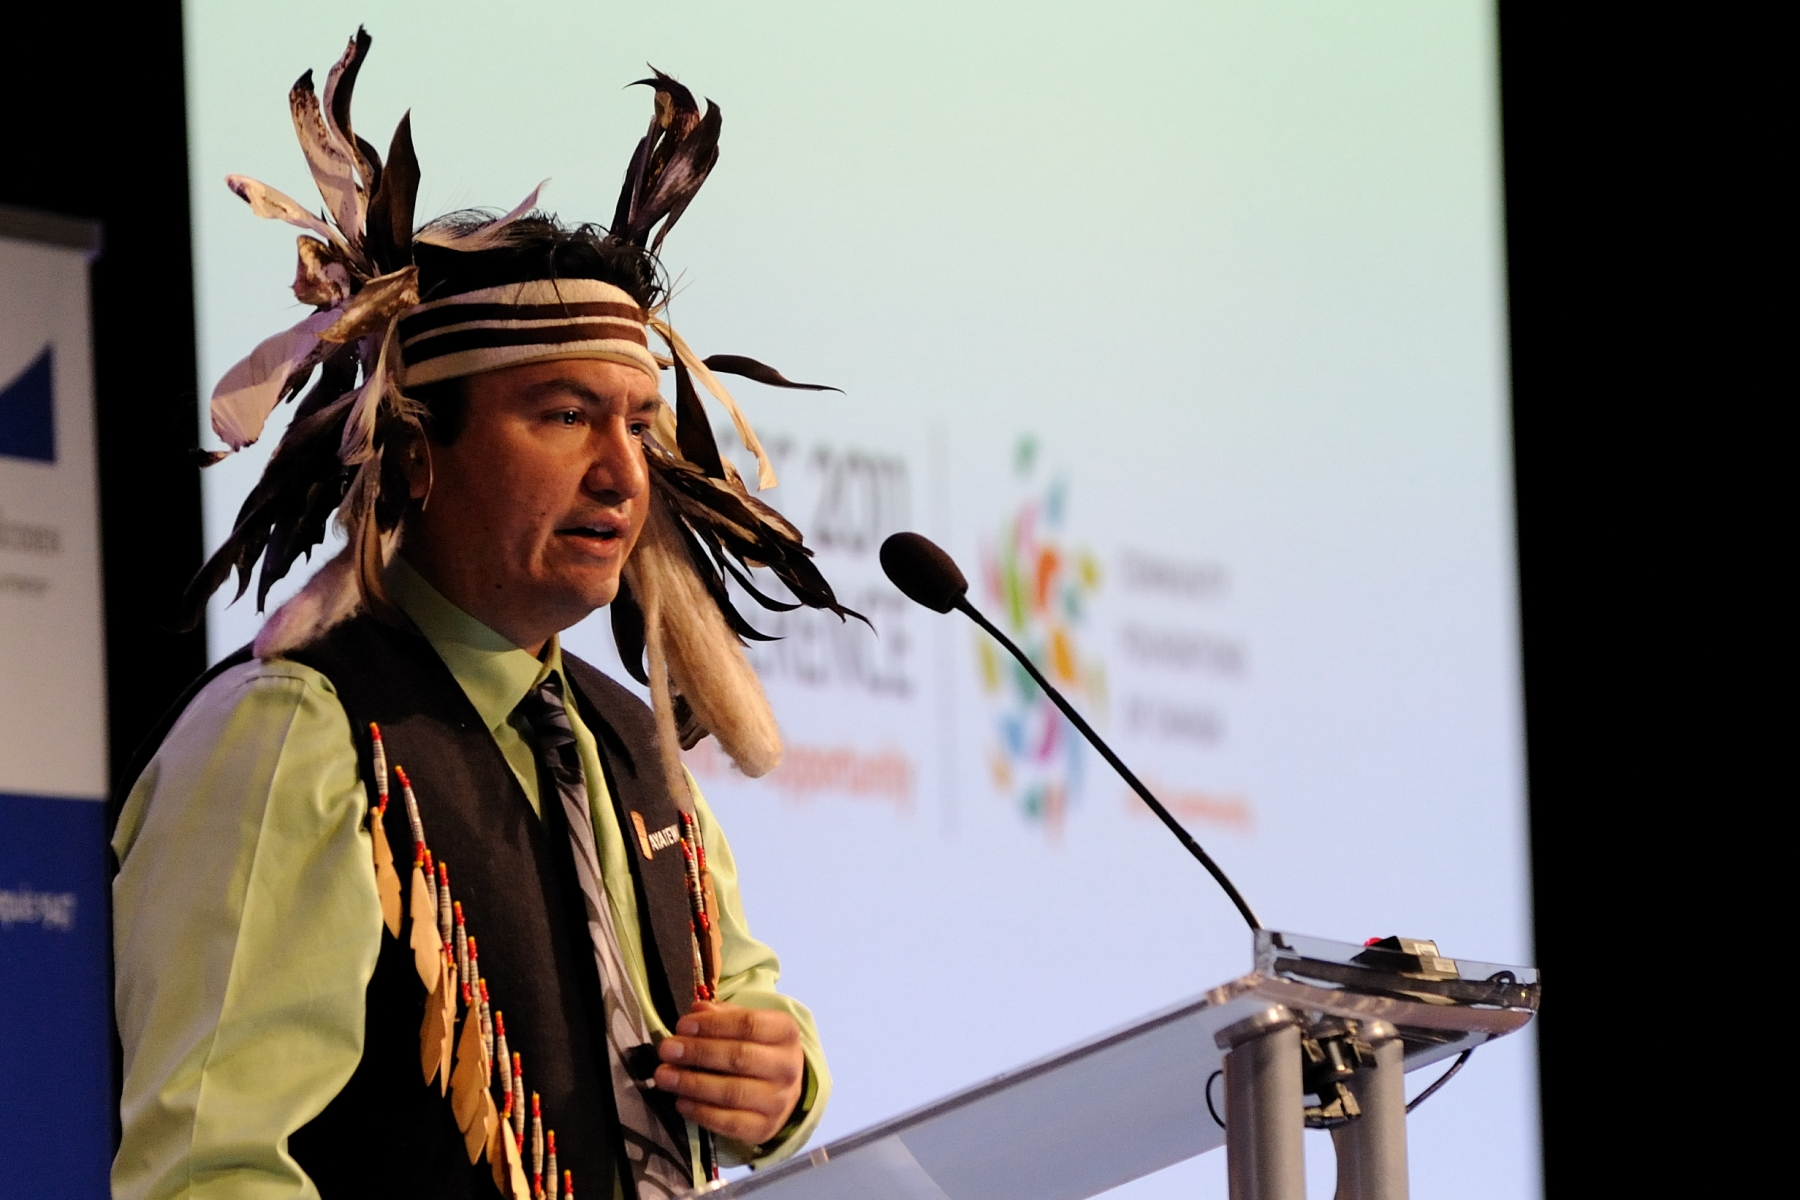 His Excellency the Right Honourable David Johnston, Governor General of Canada, delivered the opening address at the 2011 Community Foundations of Canada (CFC) Conference entitled A World of Opportunity. Chief Ian Campbell welcomed participants.